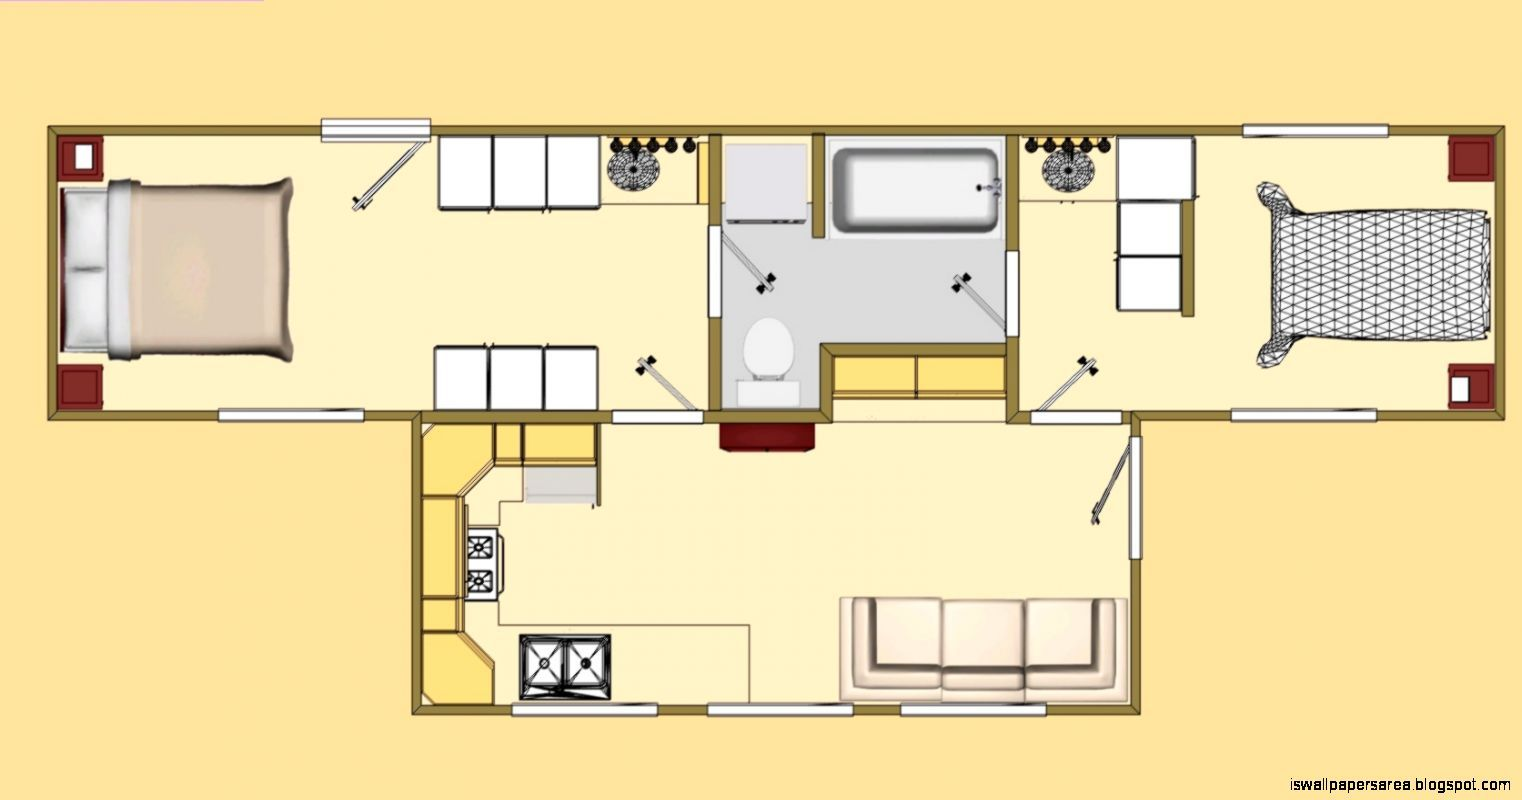 modern-home-chapter-container-home-floor-plans-home-design-houzz.jpg Houzz Home Design Floor Plans on signature homes floor plans, sater design collection house plans, interior design floor plans, small house floor plans, traditional home floor plans, british floor plans, contemporary open floor house plans, new florida home floor plans, sater design mediterranean floor plans, country kitchen house floor plans, carriage house floor plans, beautiful home floor plans, caribbean house designs and floor plans, kitchen design floor plans, awesome one story house plans, screen porch designs and plans, utah home floor plans, 2012 most popular home plans, santa barbara style home floor plans, greek revival plantation home house plans,